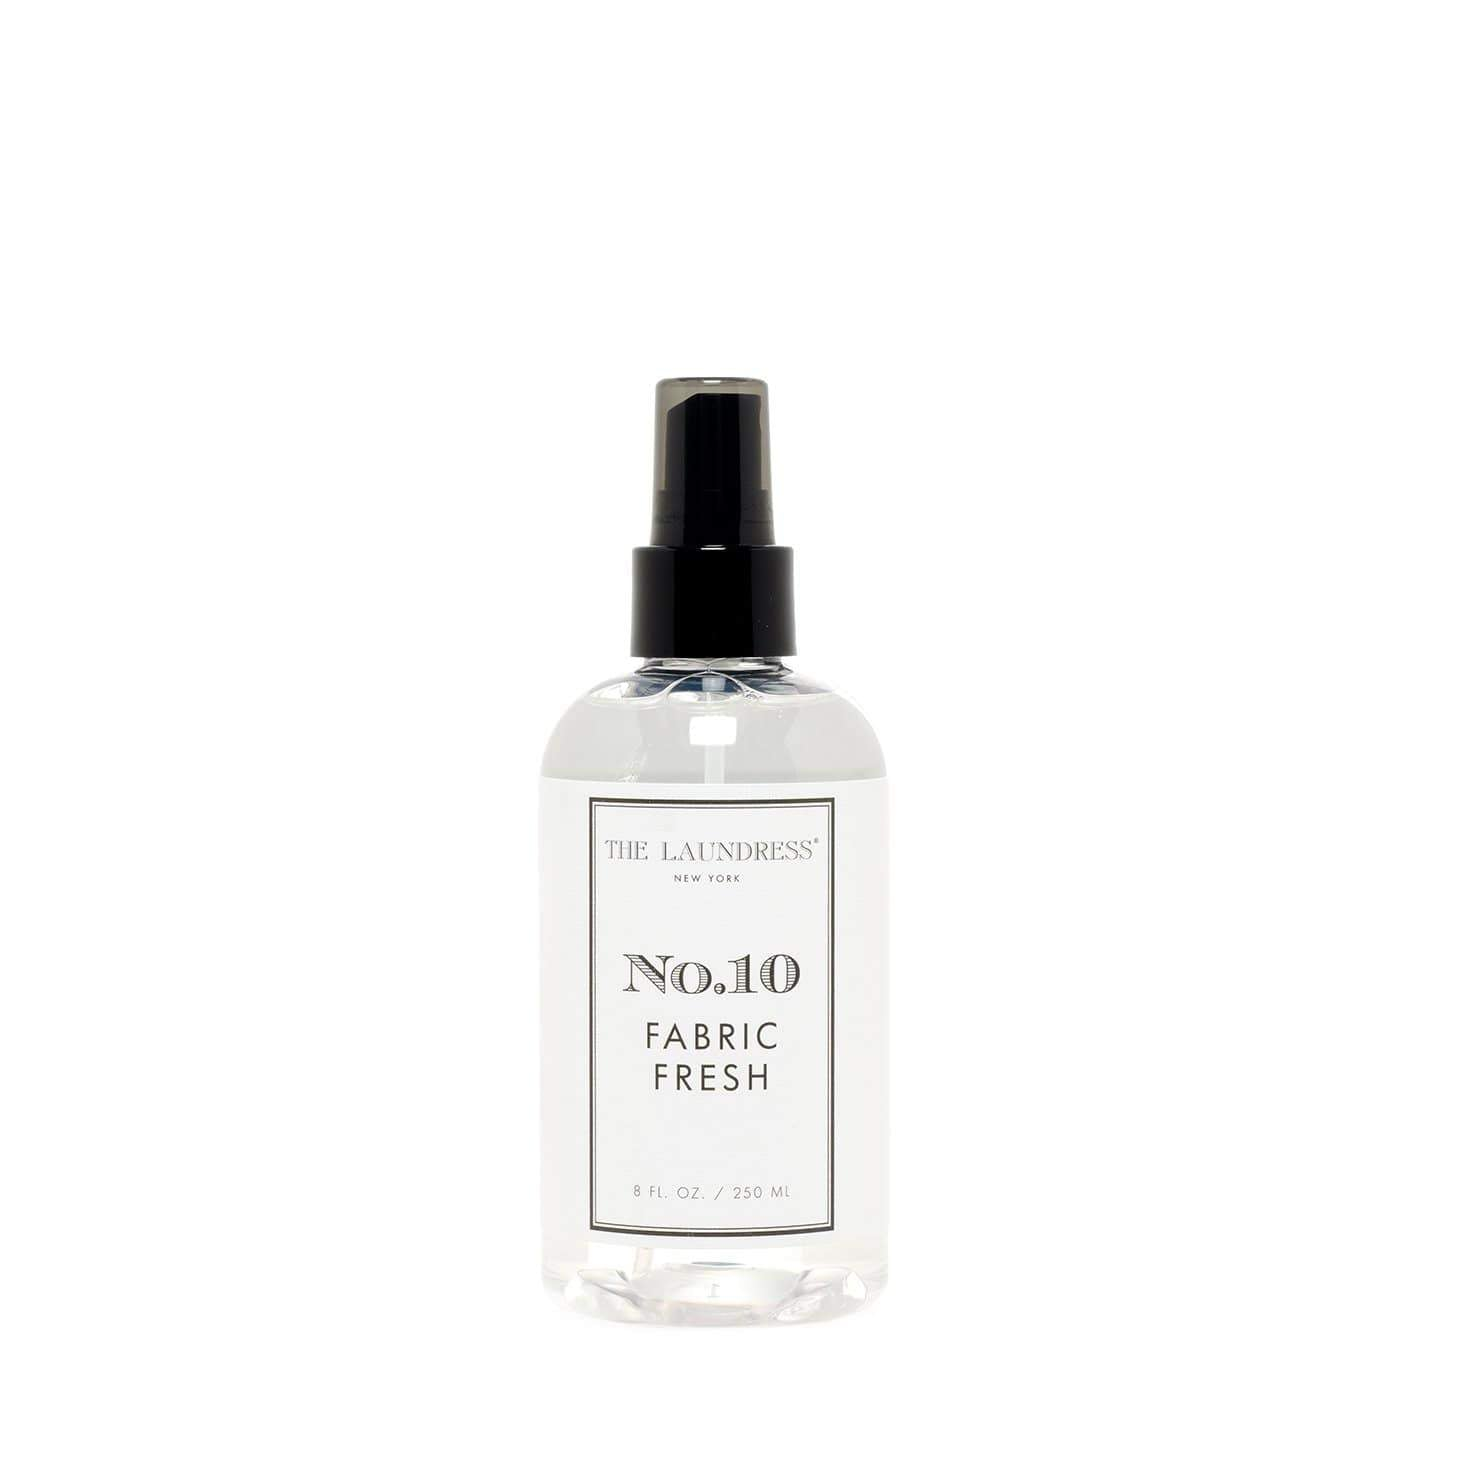 The Laundress No 10 Fabric Fresh - 250ml